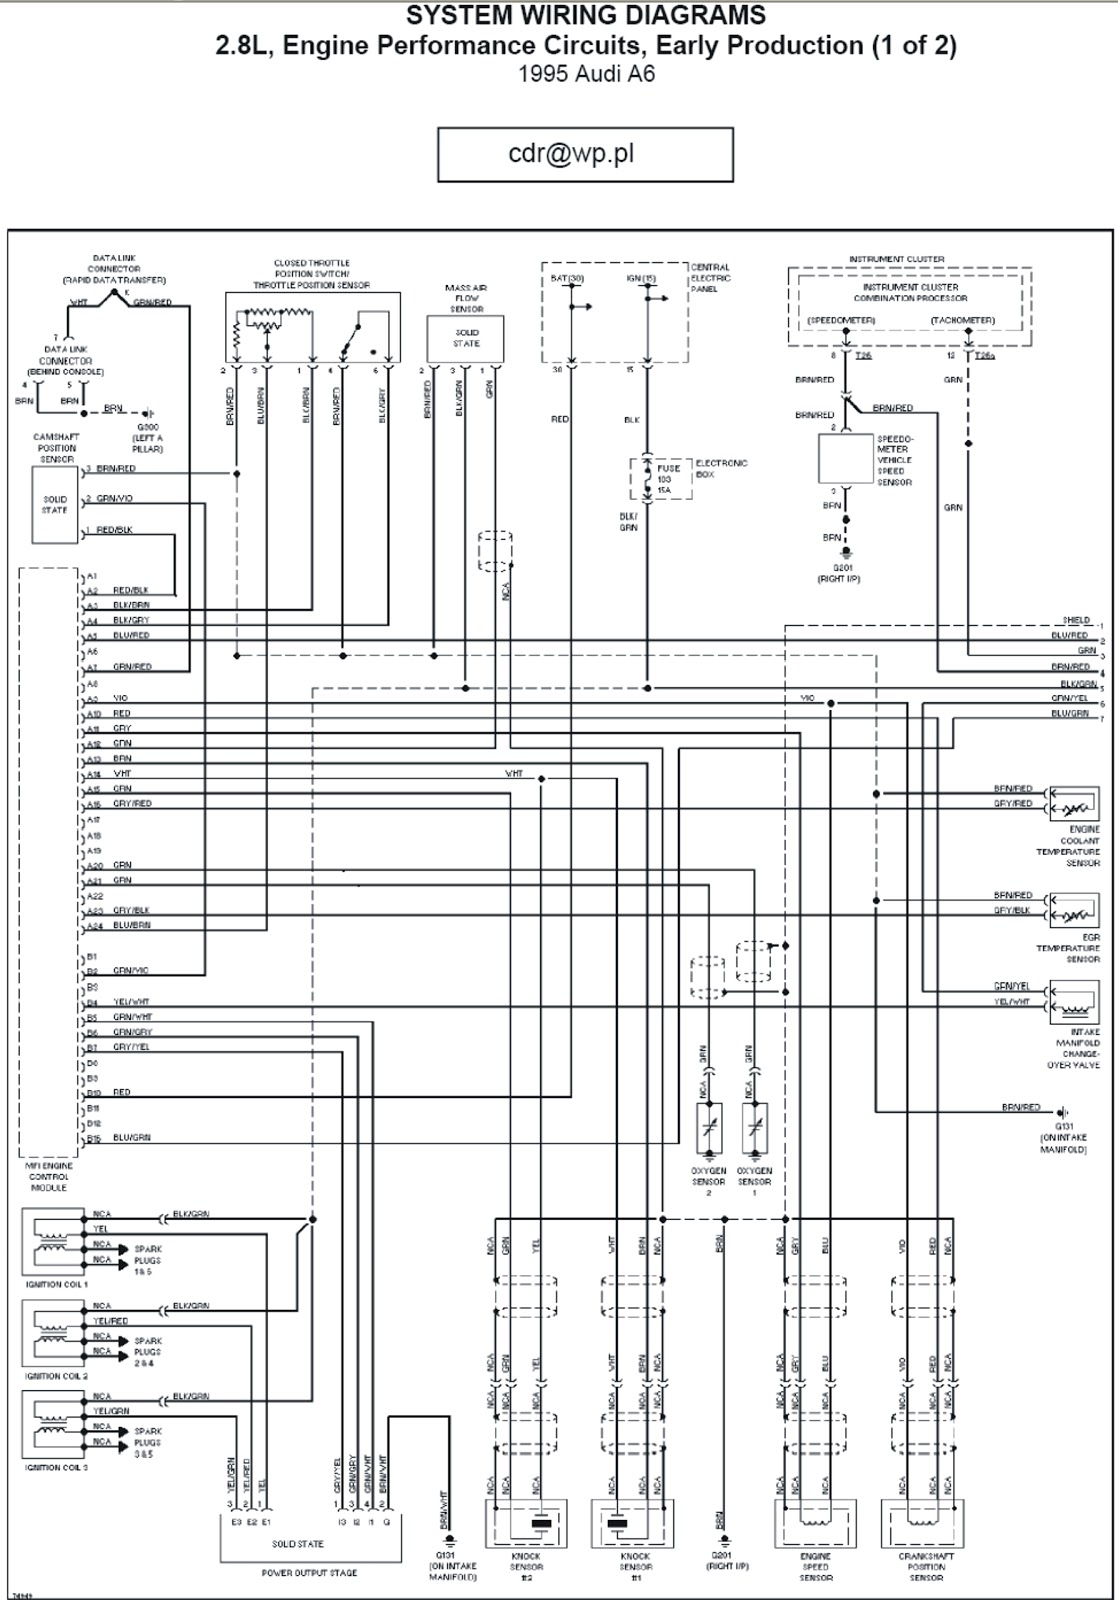 DIAGRAM] 2001 A6 Wiring Diagram Ecu FULL Version HD Quality Diagram Ecu -  EBOOKECSTASY.AMANDINE-BREVELAY.FRebookecstasy.amandine-brevelay.fr